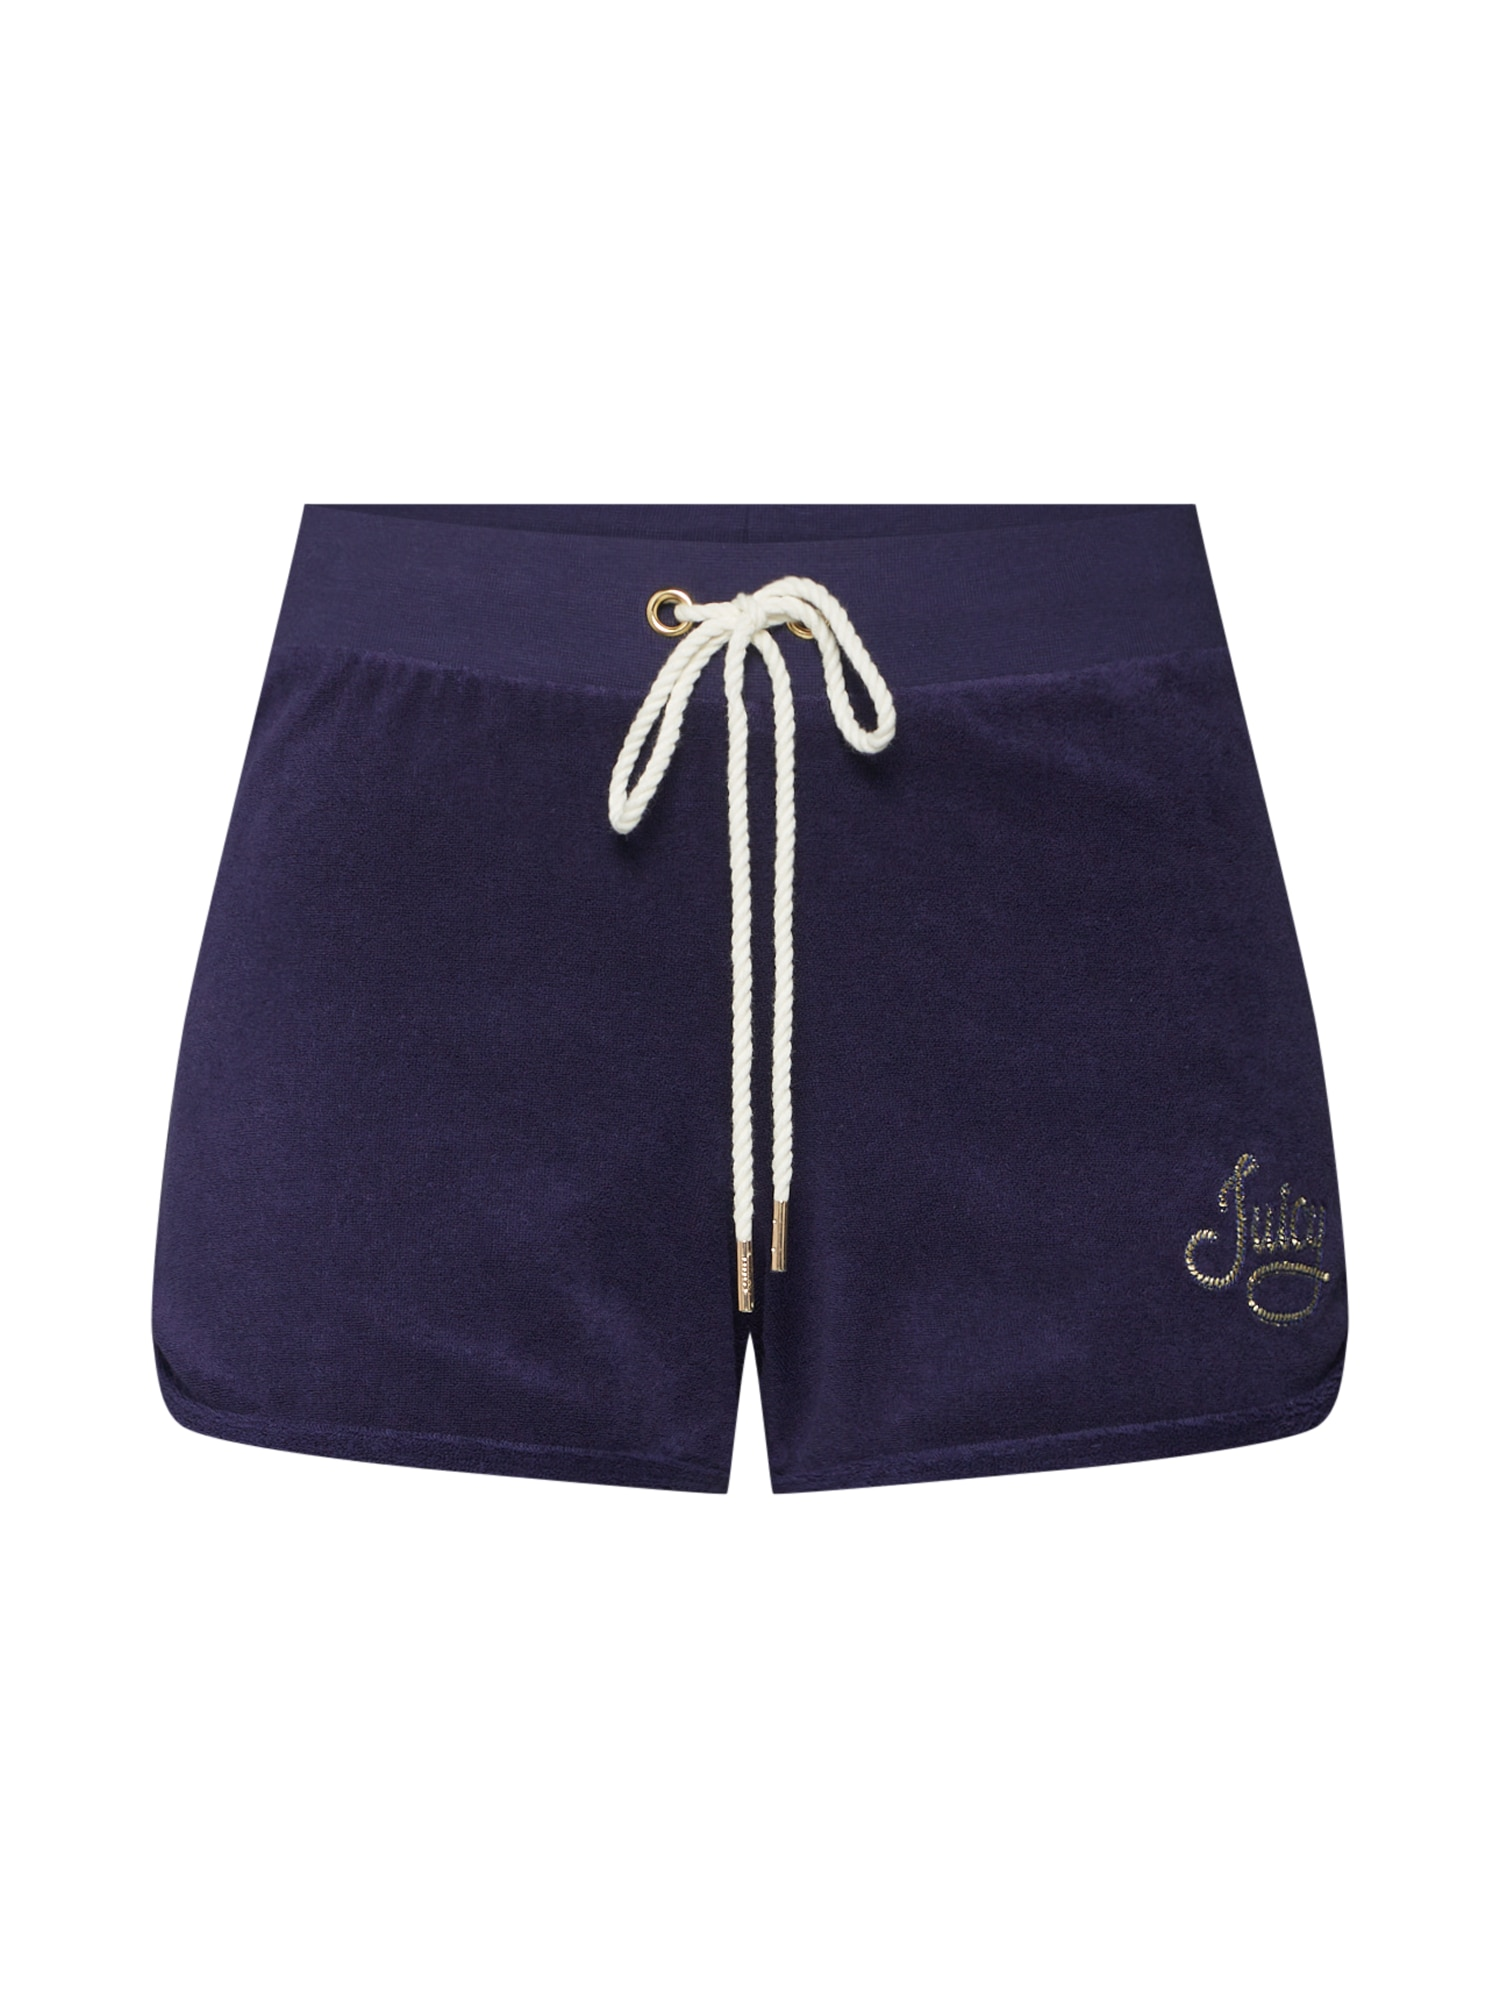 Kalhoty ROPE MICRO TERRY SHORT modrá Juicy Couture Black Label